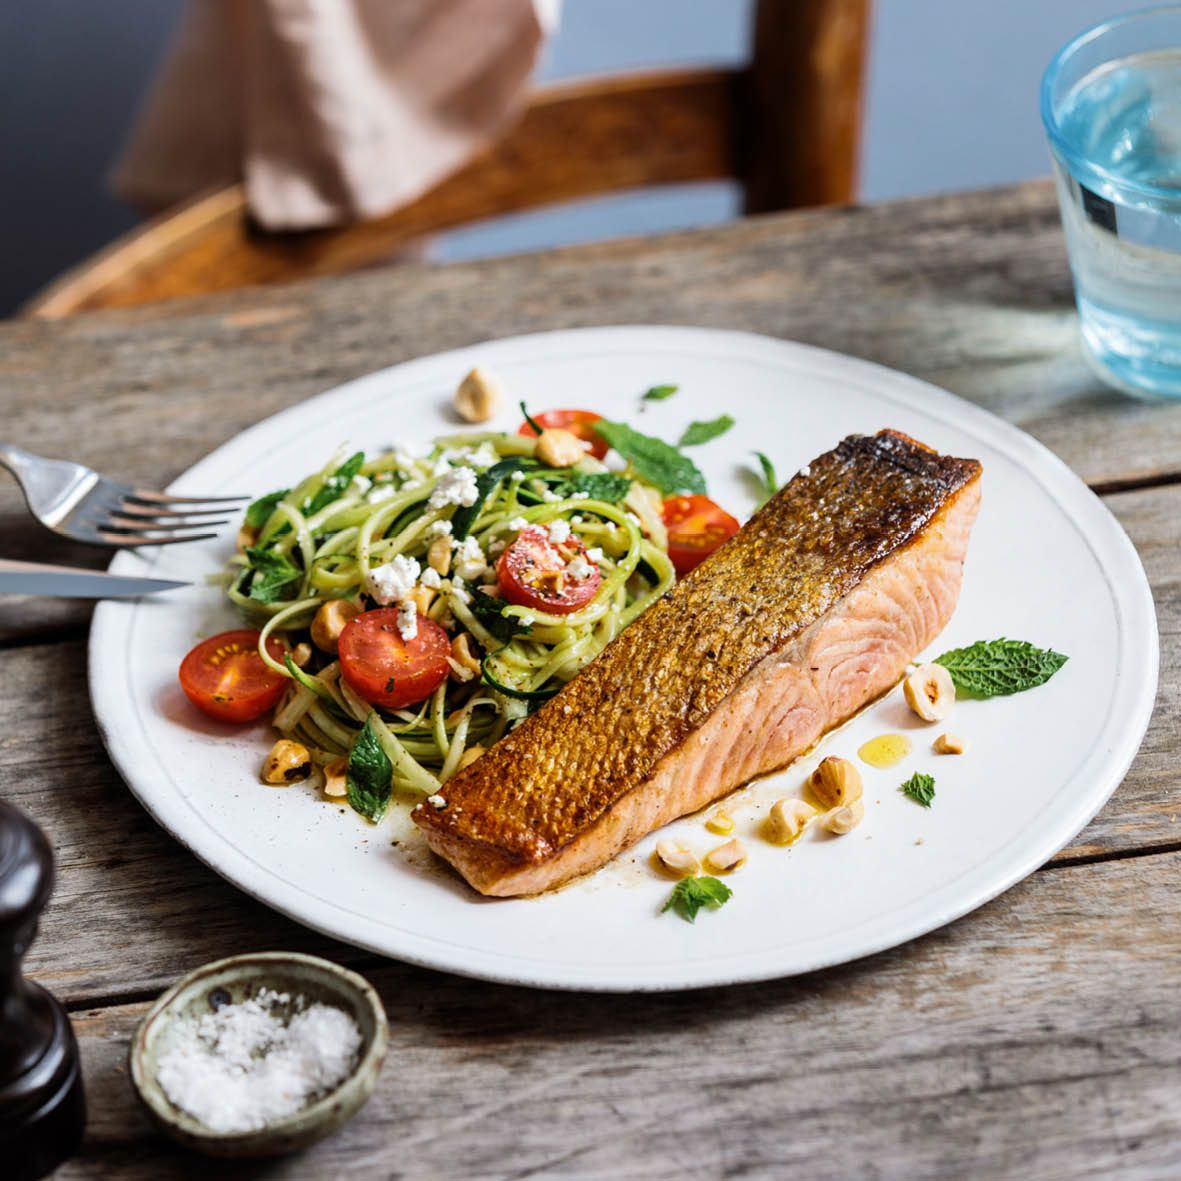 Huon_Salmon_with_Zucchini_noodles_-_Hill_Street_002.jpg